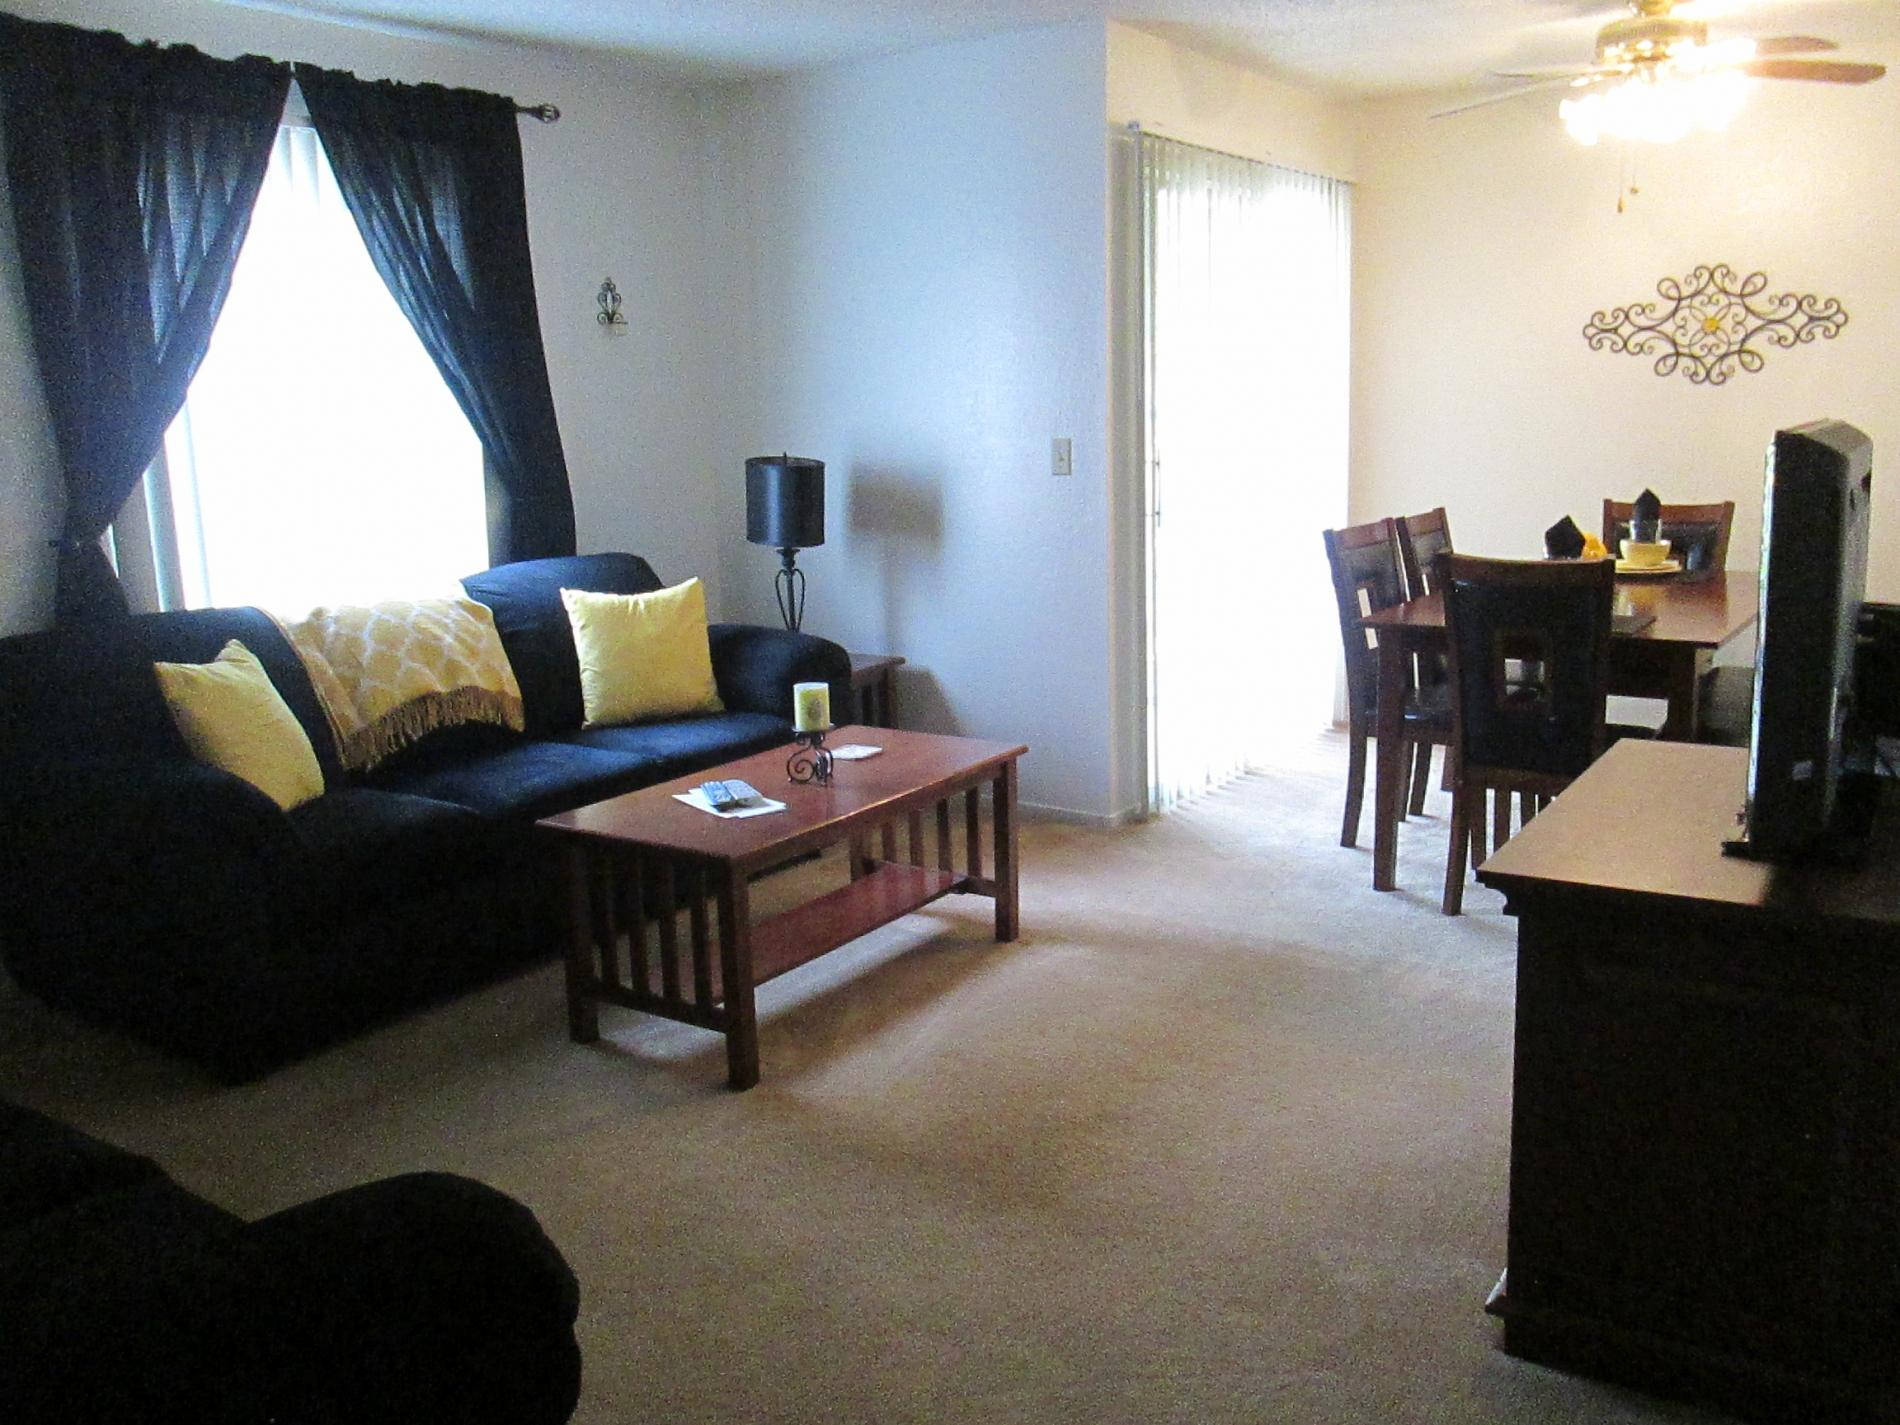 704A Family Suite at Whispering Meadows Apts. 0